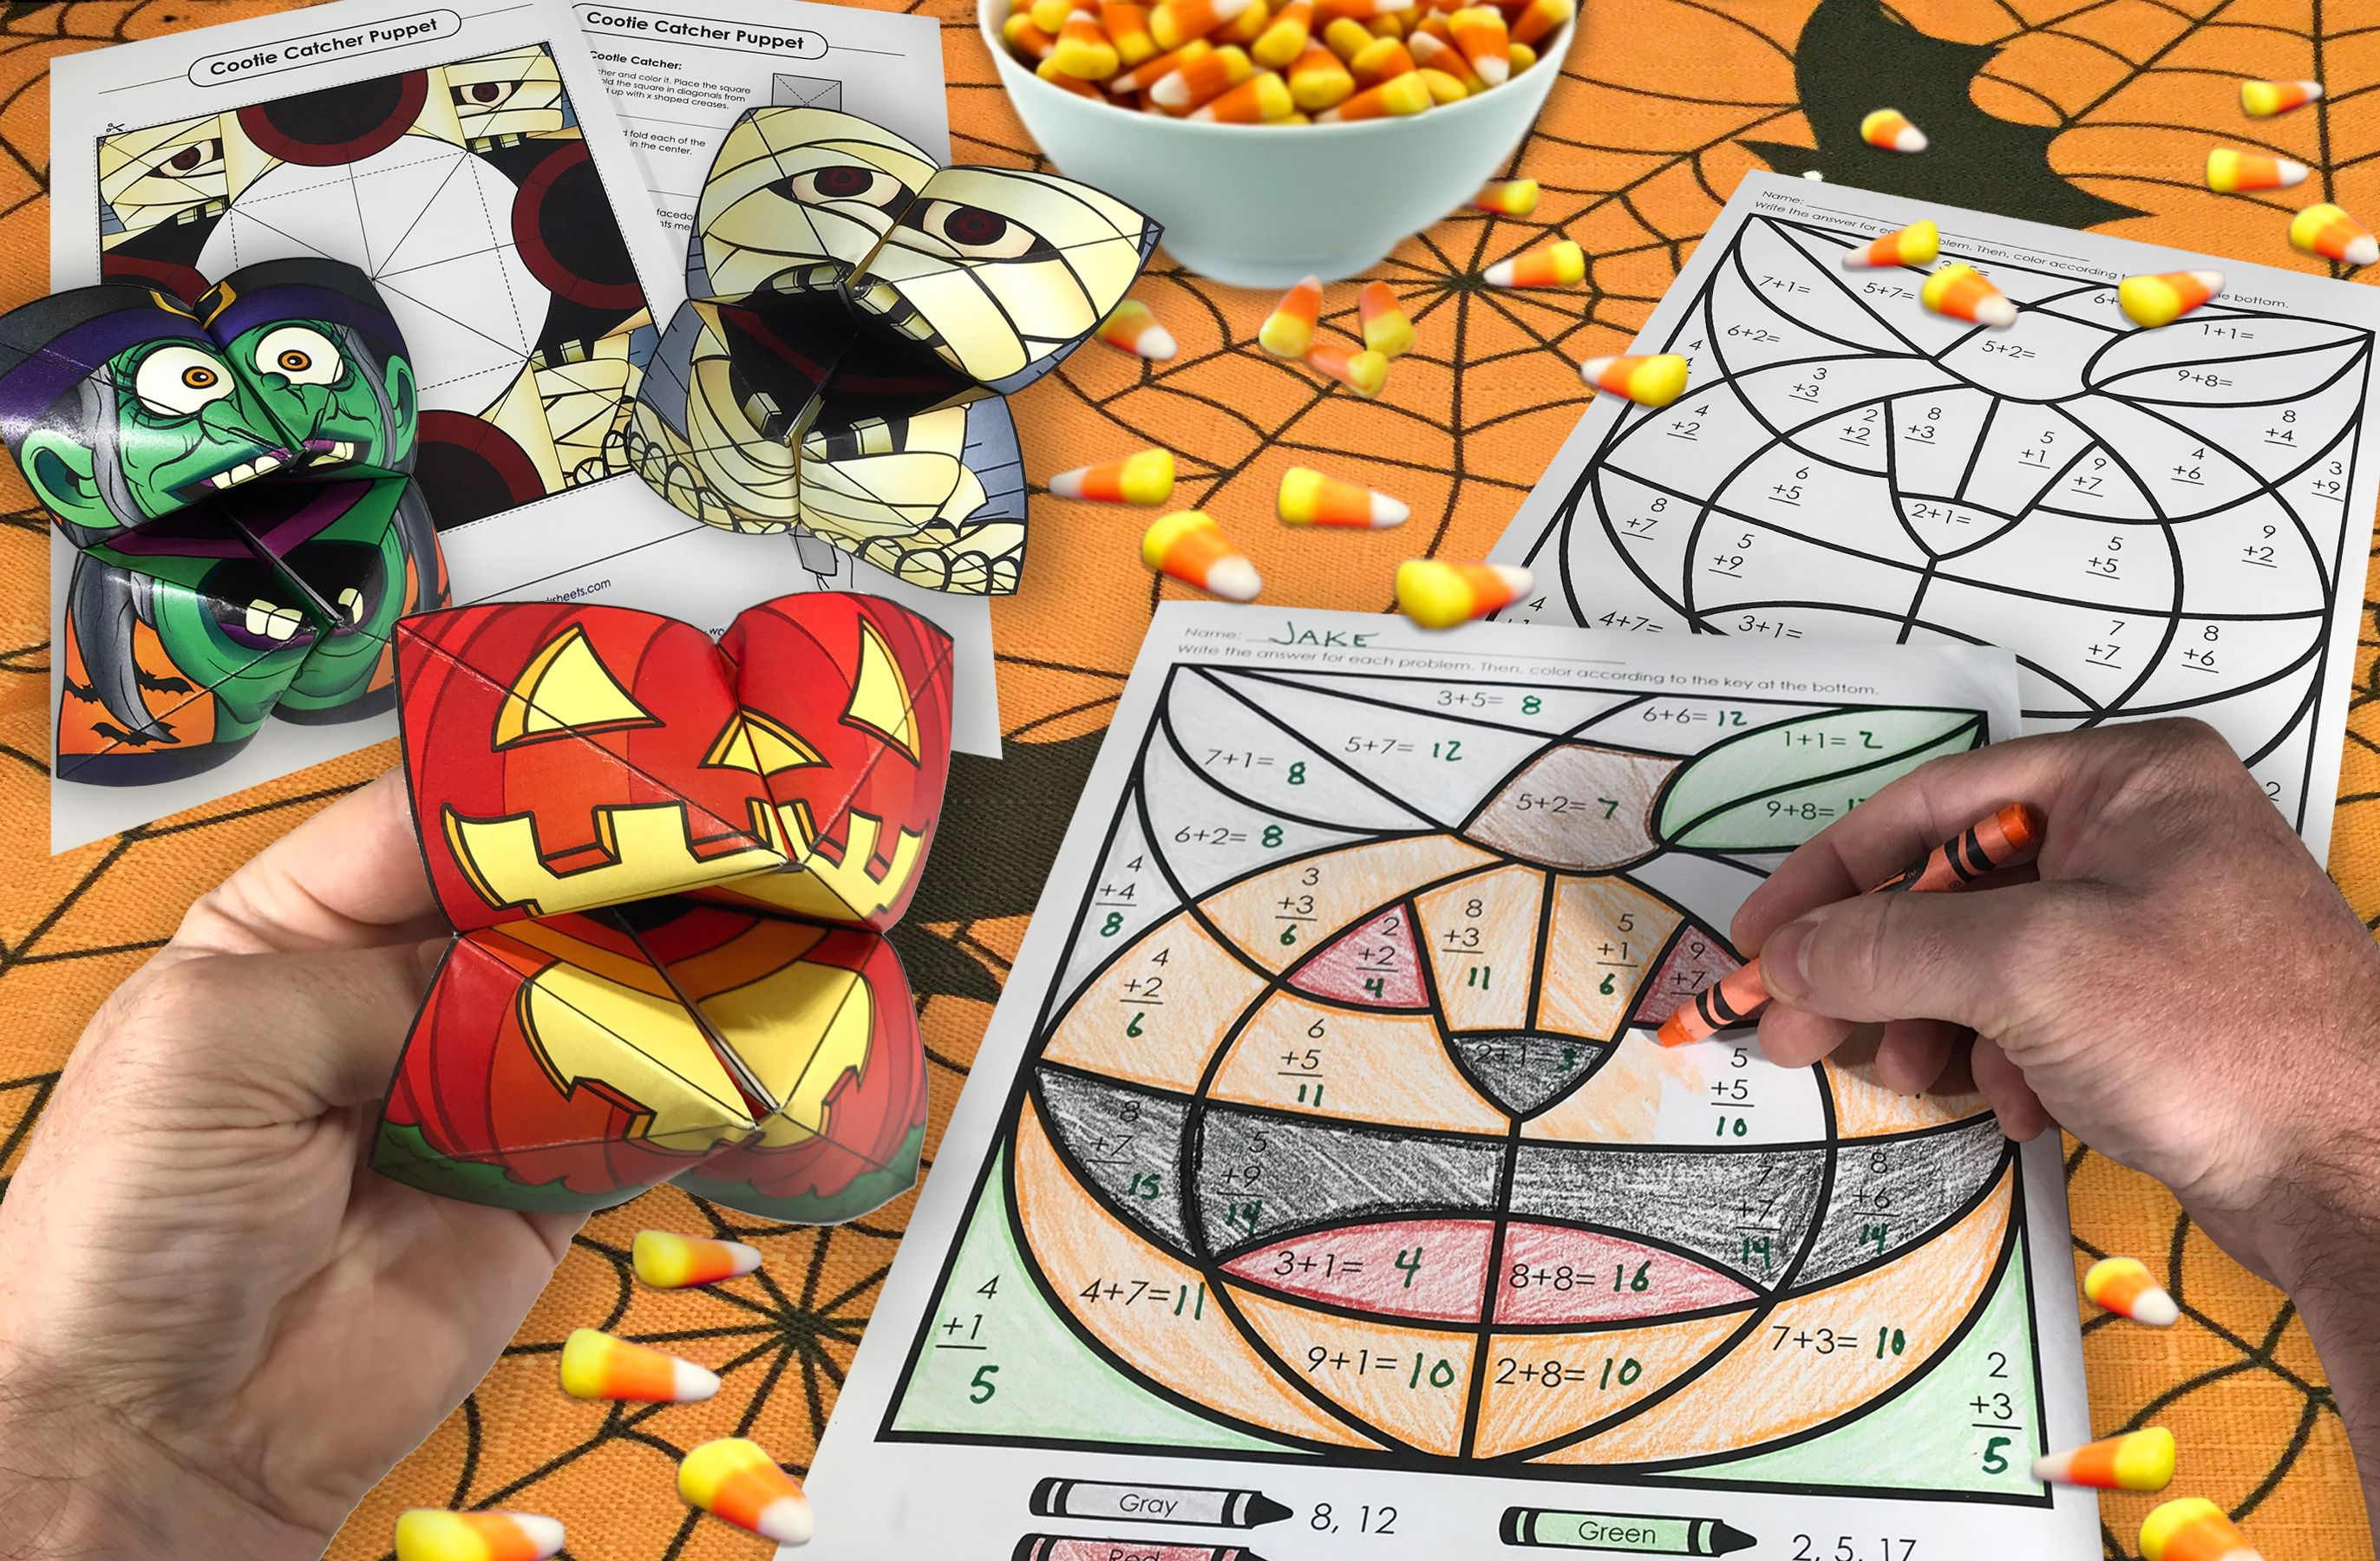 Print Out Halloween Cootiecatchers Mathmysterypictures